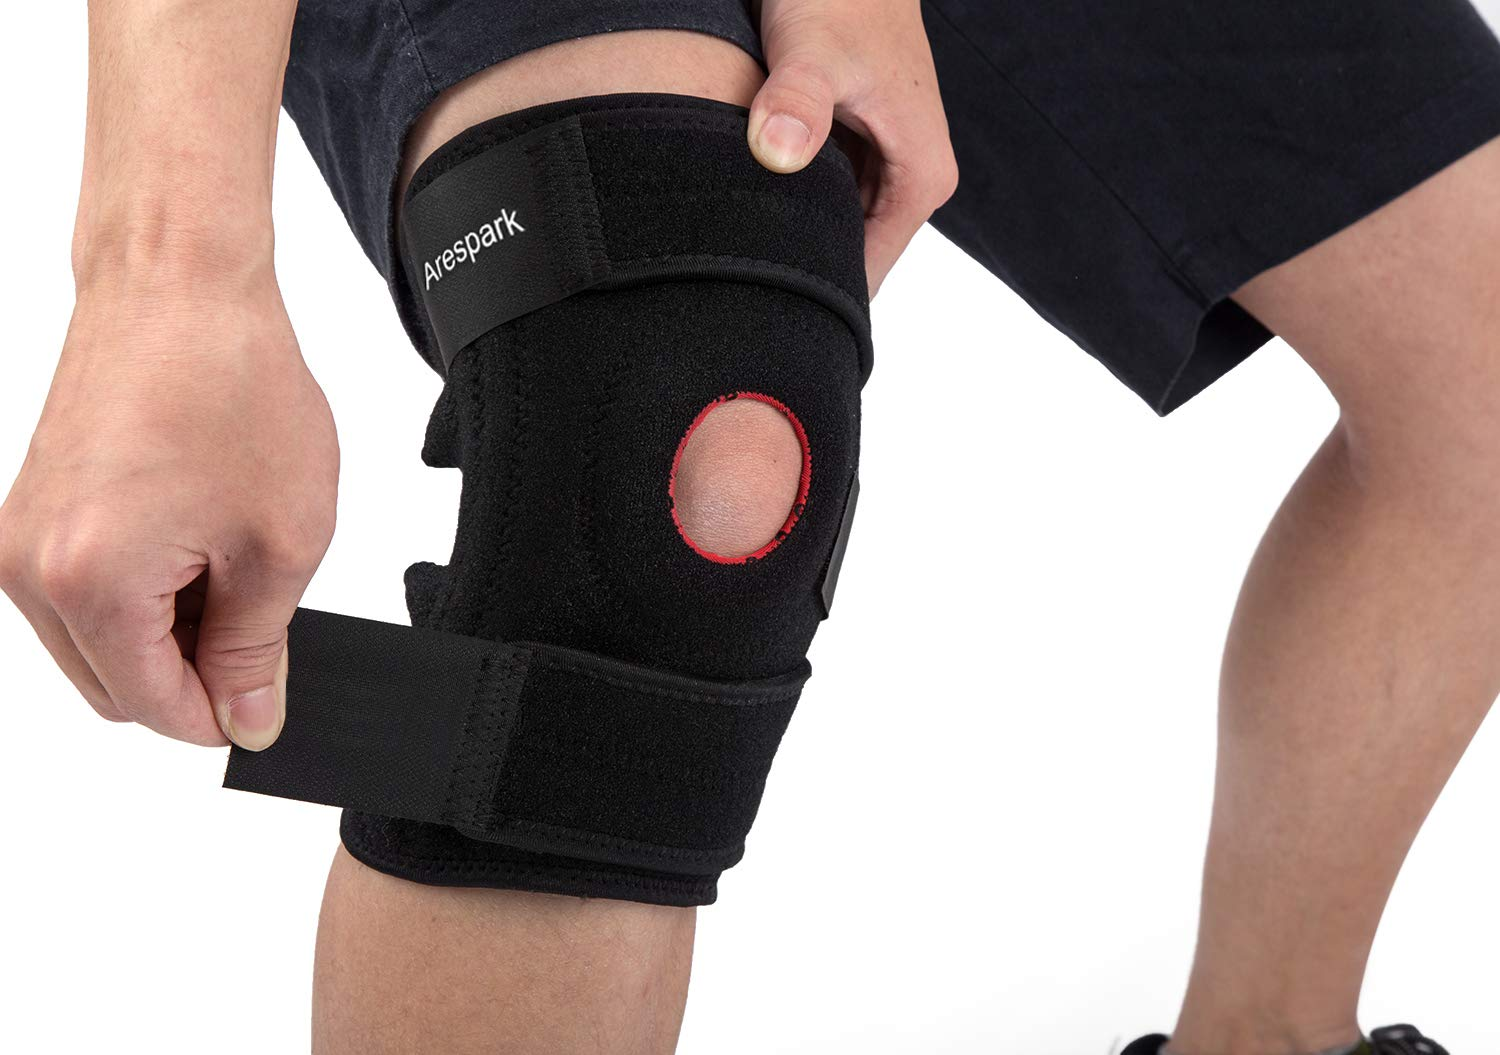 398f5ea066 Knee Brace Support, Arespark Breathable Knee Stabilizer & Elastic  Compression for Knee Stability & Recovery Aid, Neoprene Open Patellar Dual  Stabilizers ...